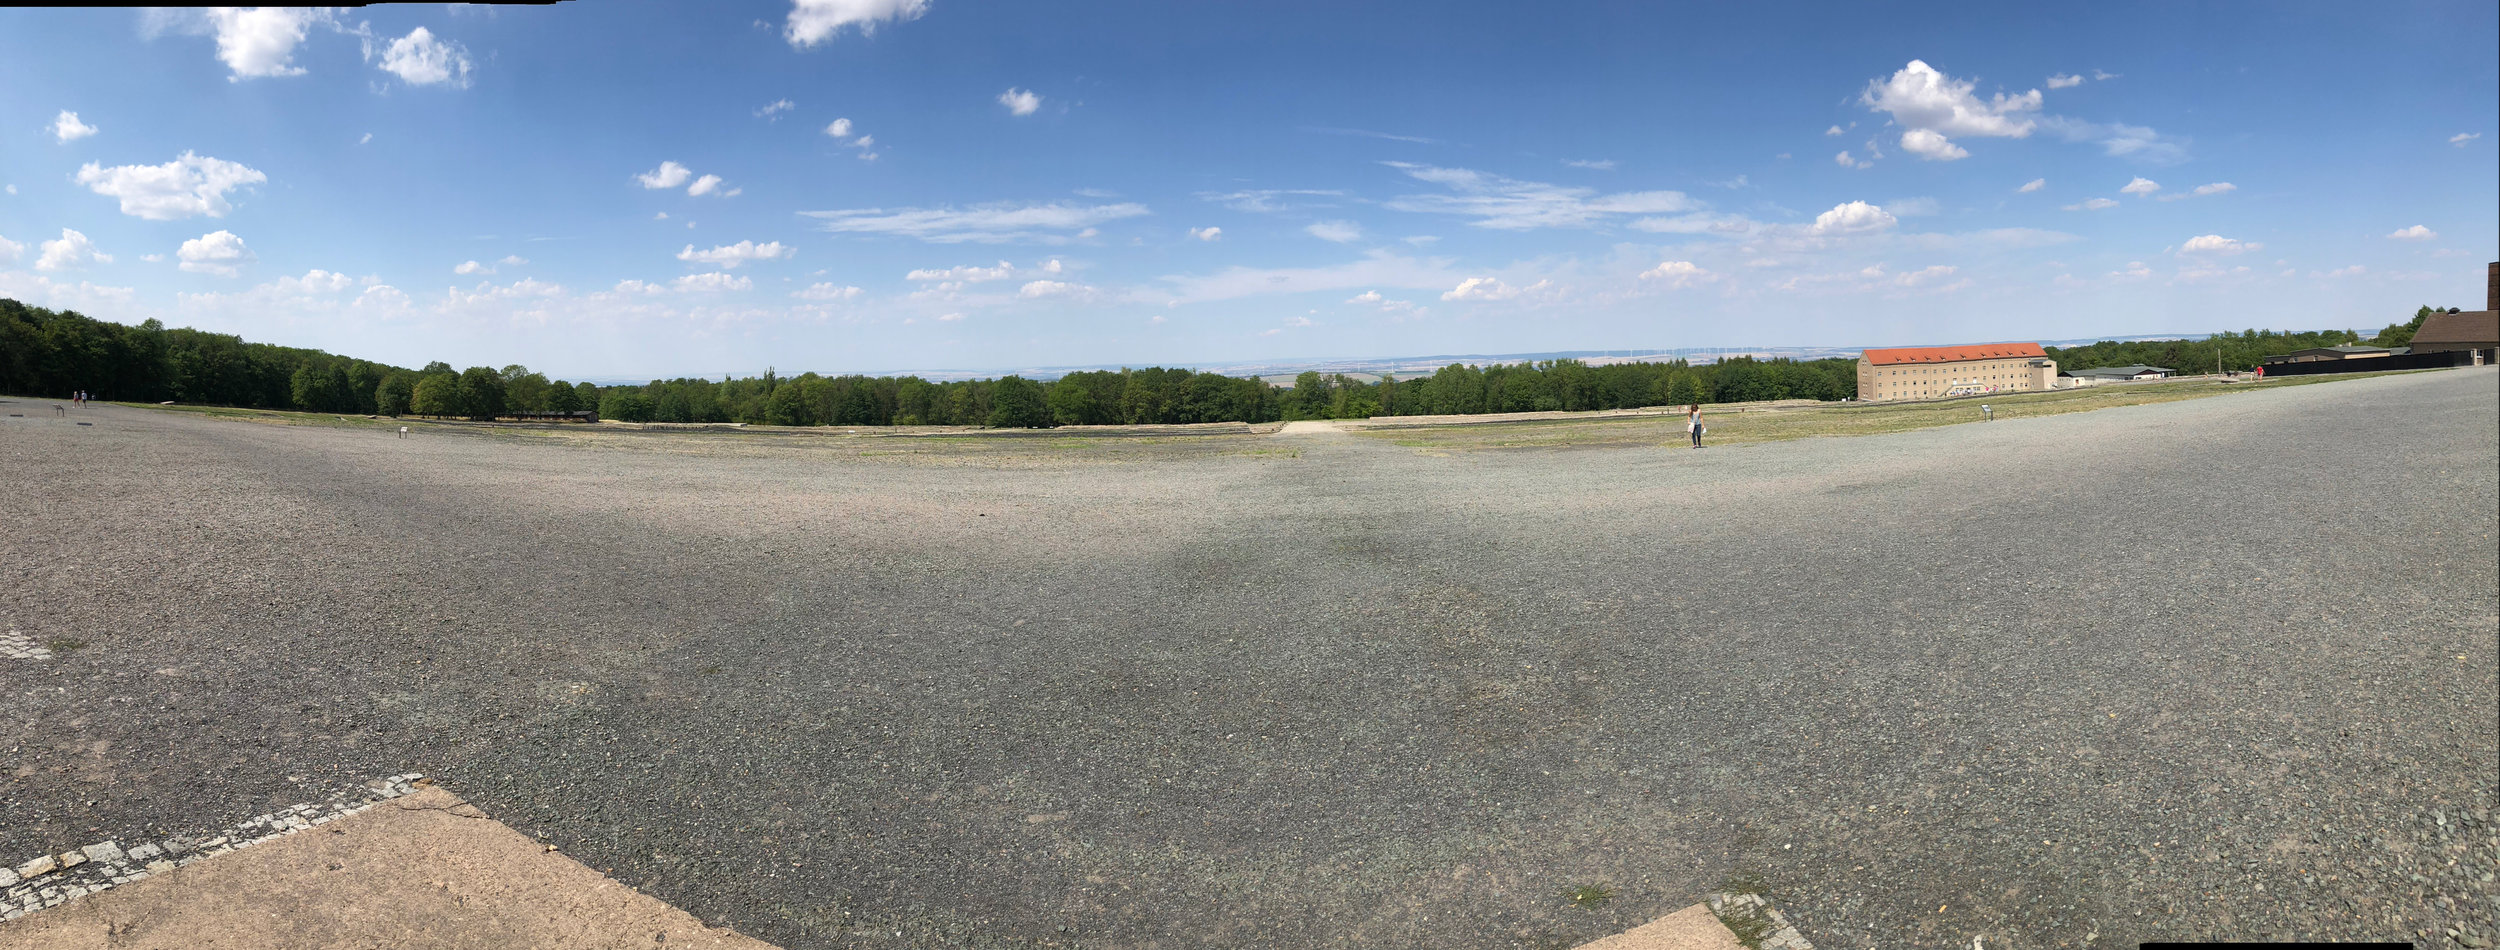 Panoramic of Buchenwald